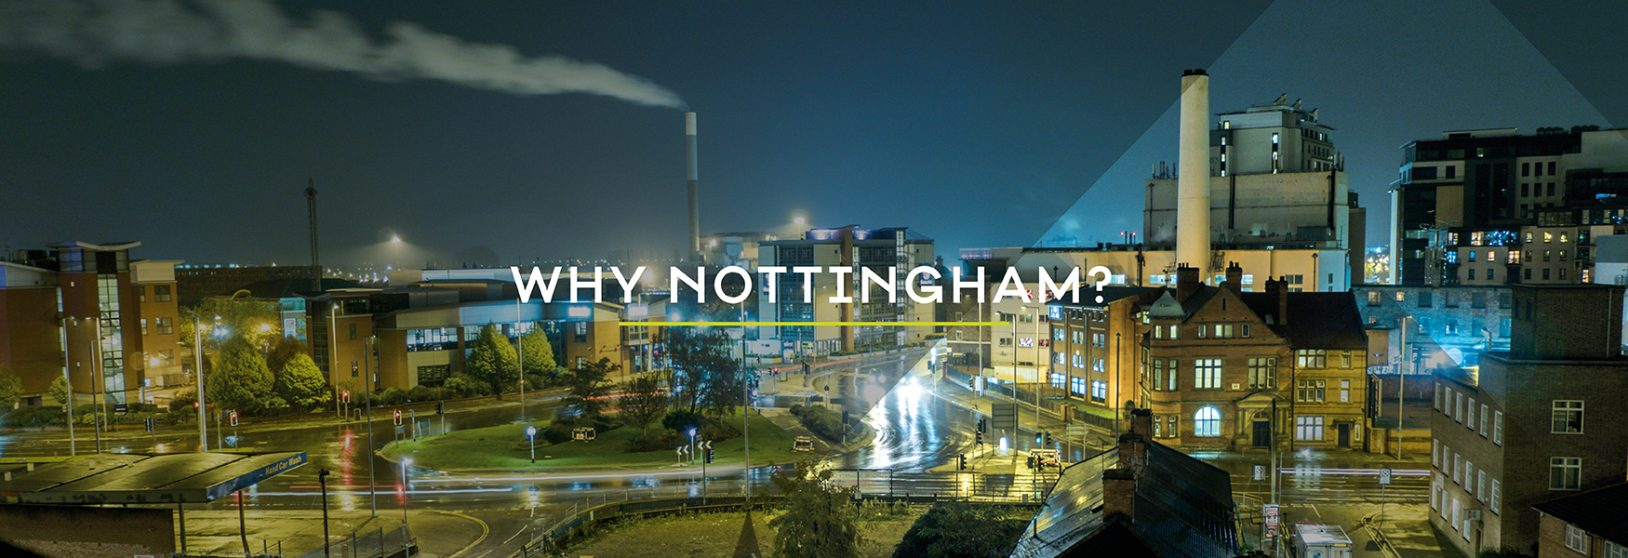 Why Nottingham?